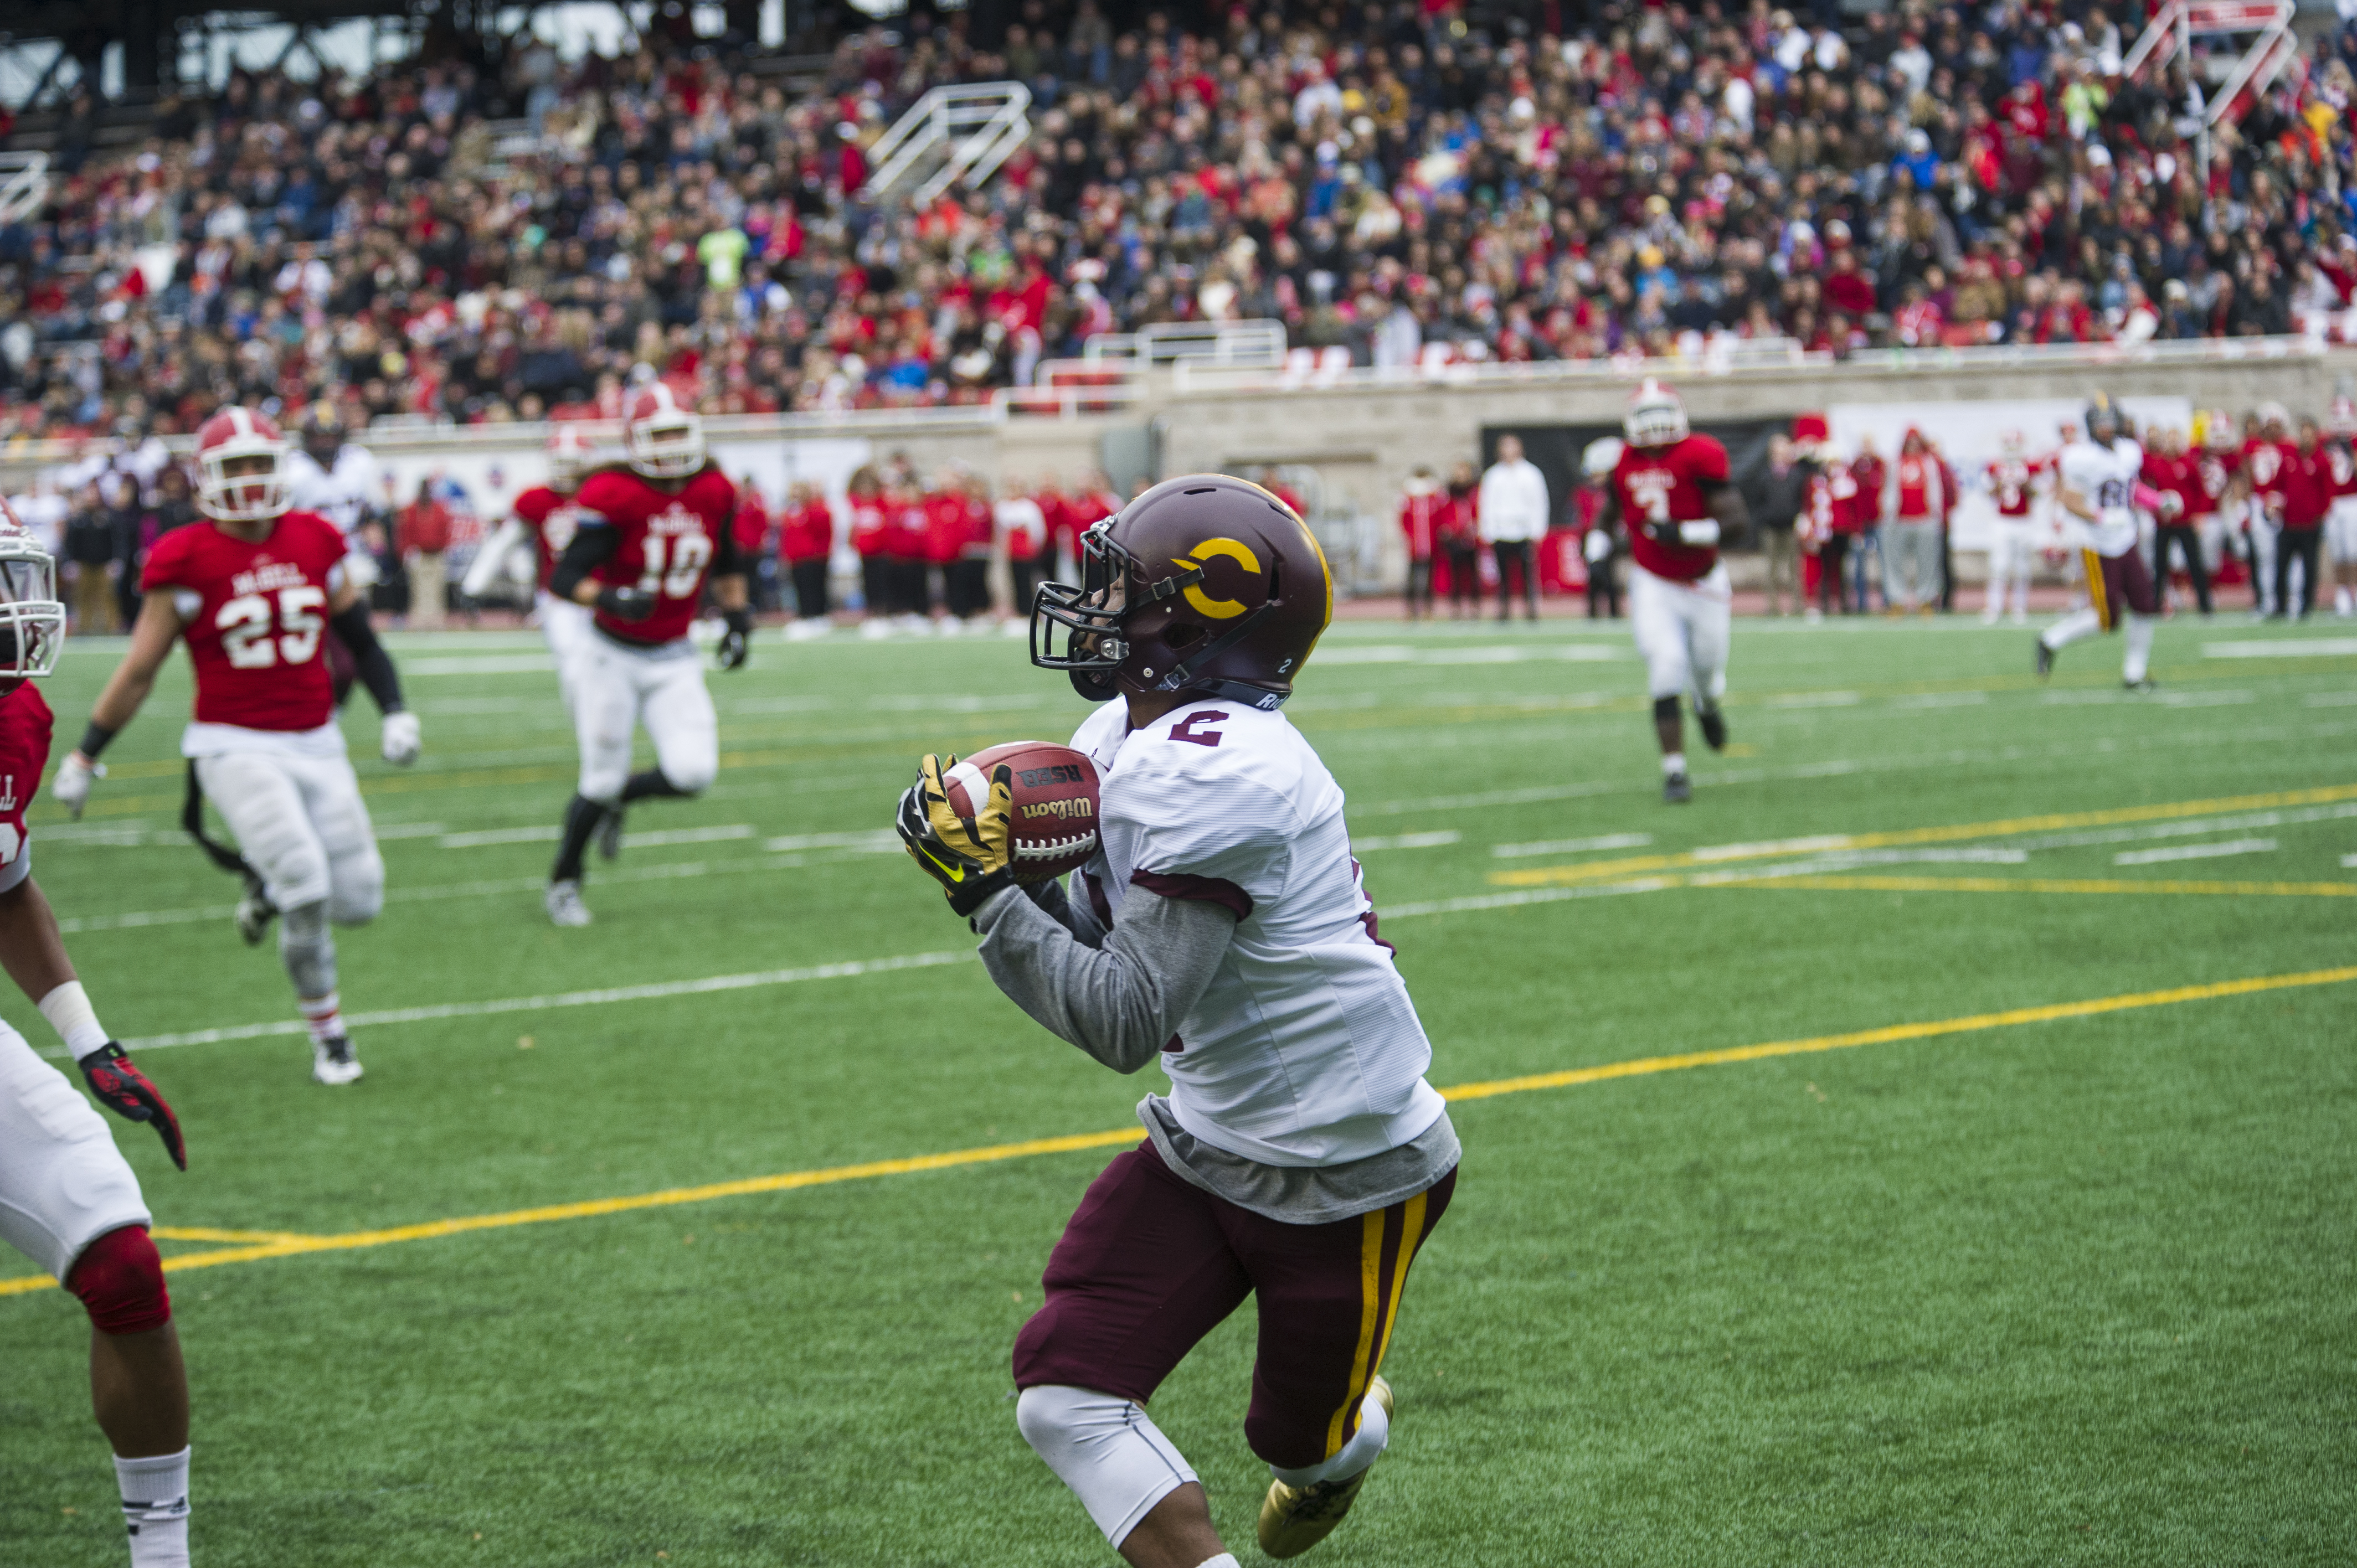 Justin Julien catches a pass from Quarterback Trenton Miller. Photo by Andrej Ivanov.